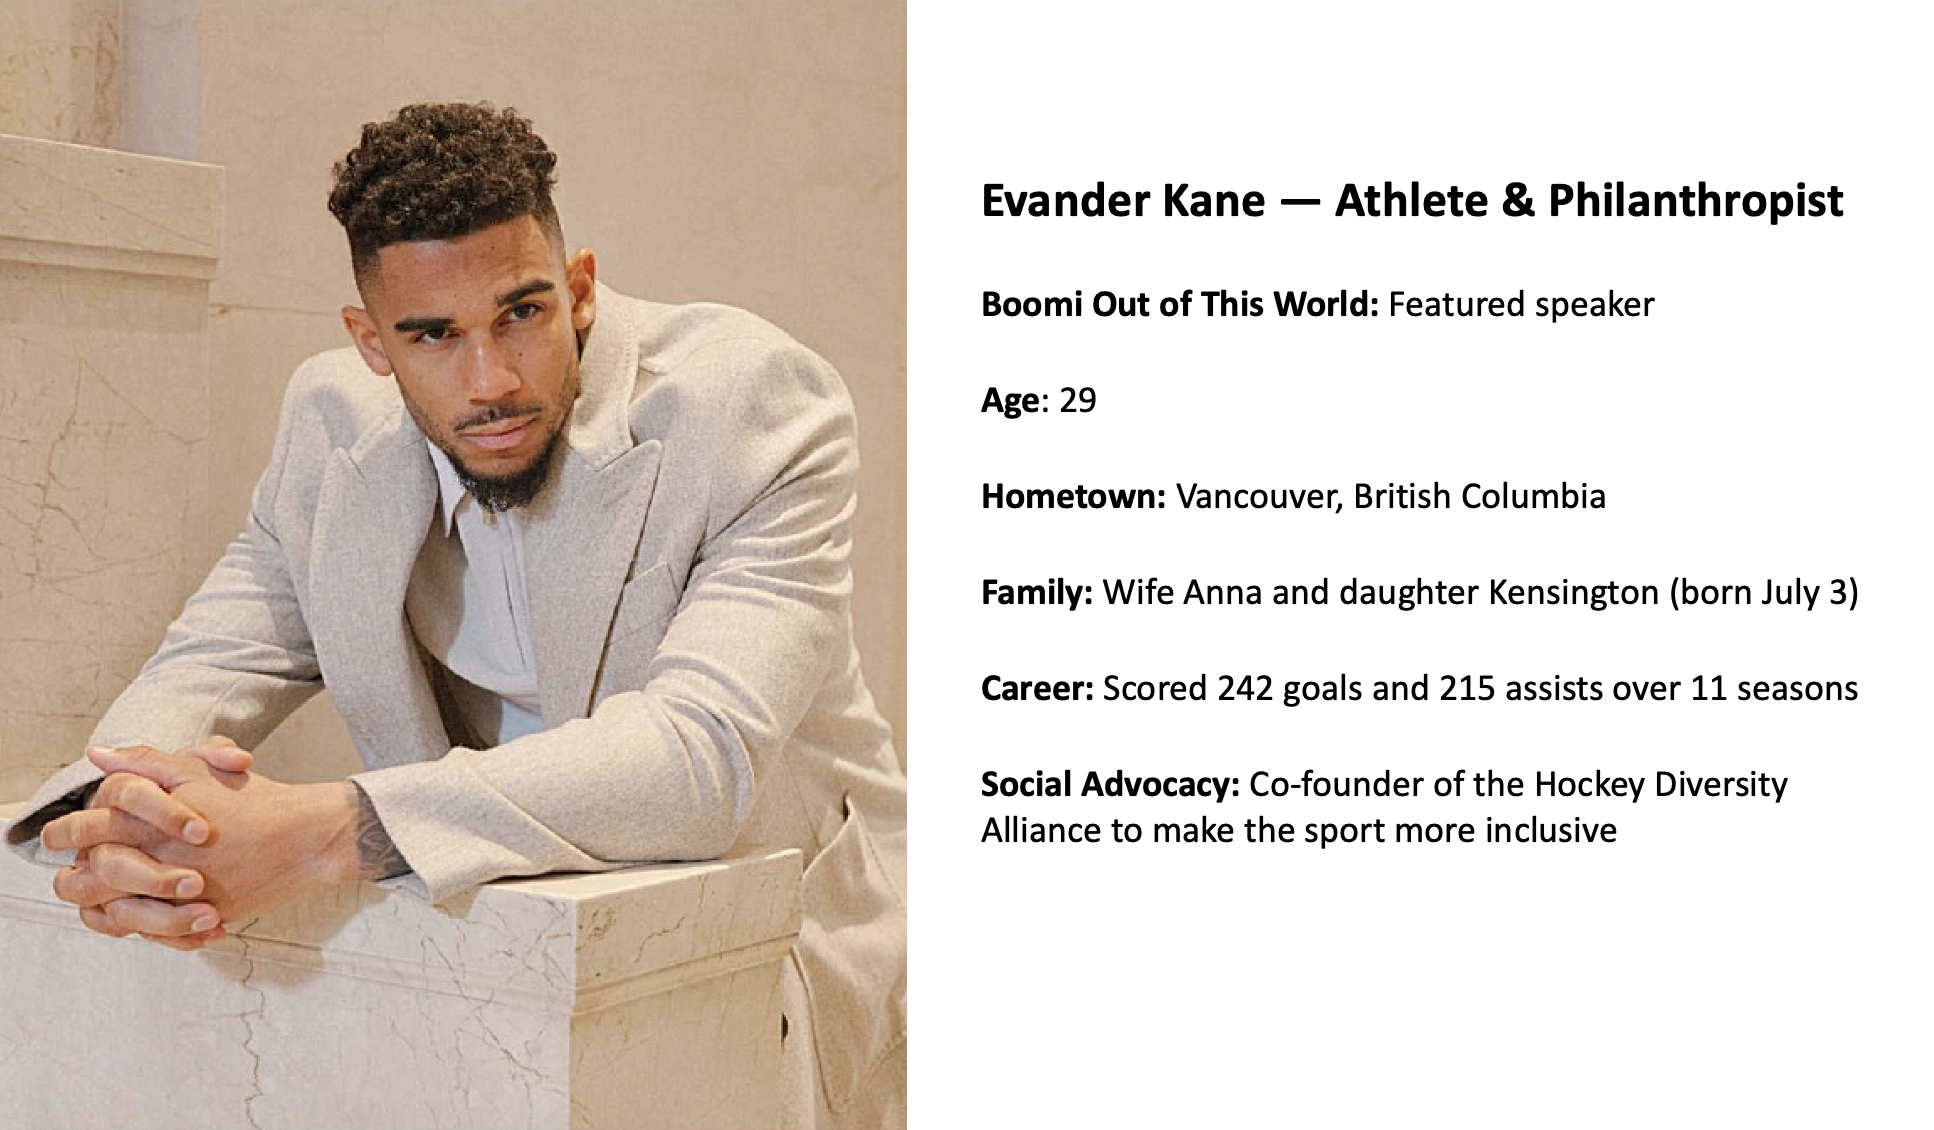 NHL Star Evander Kane Talks With Boomi About His Passion for Technology, Diversity, and Inclusion